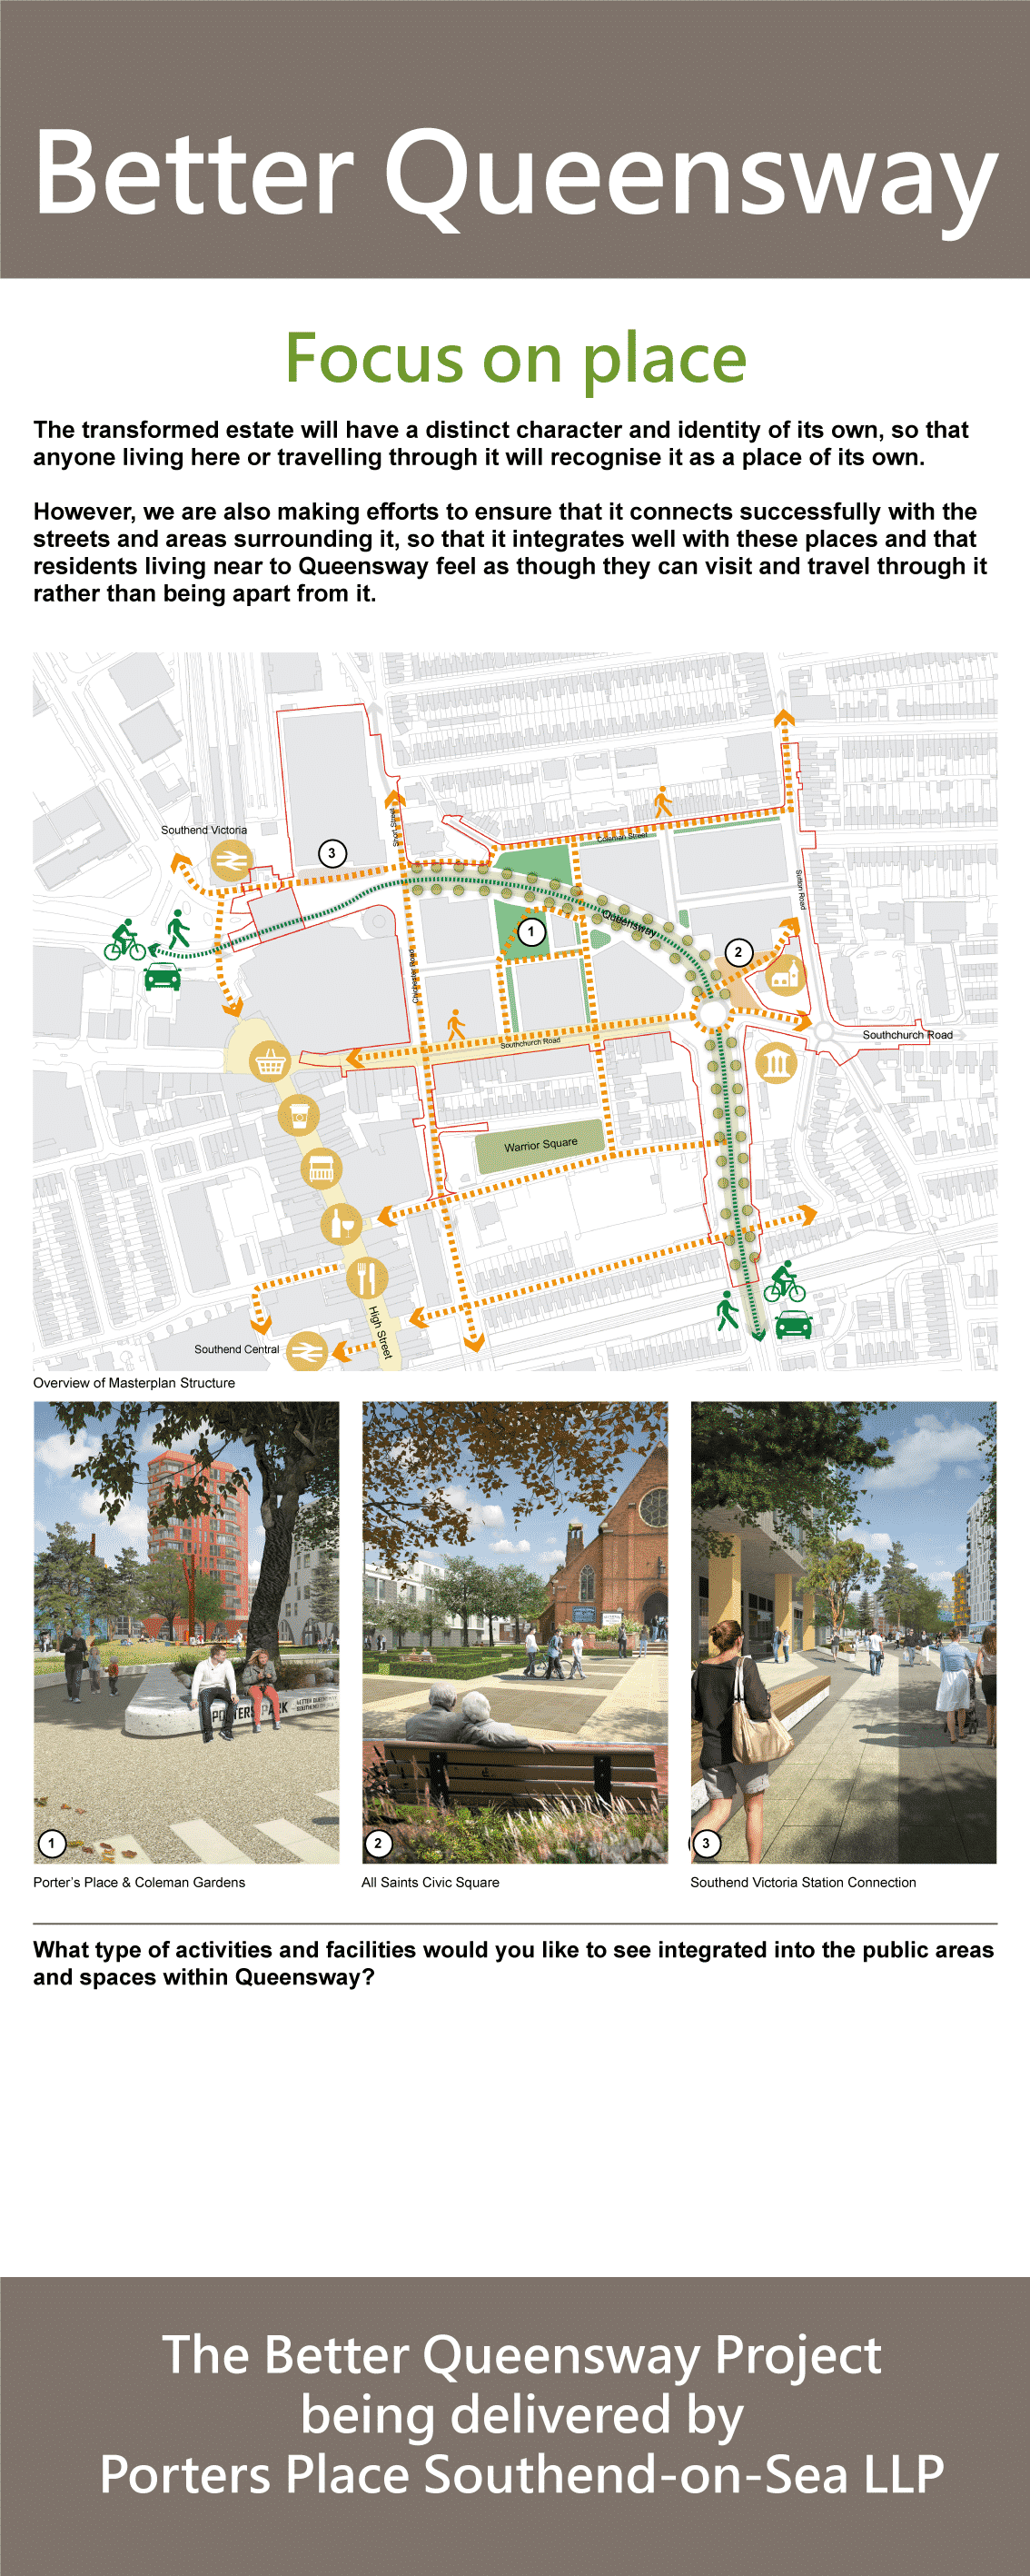 better-queensway-second-public-consultation-8